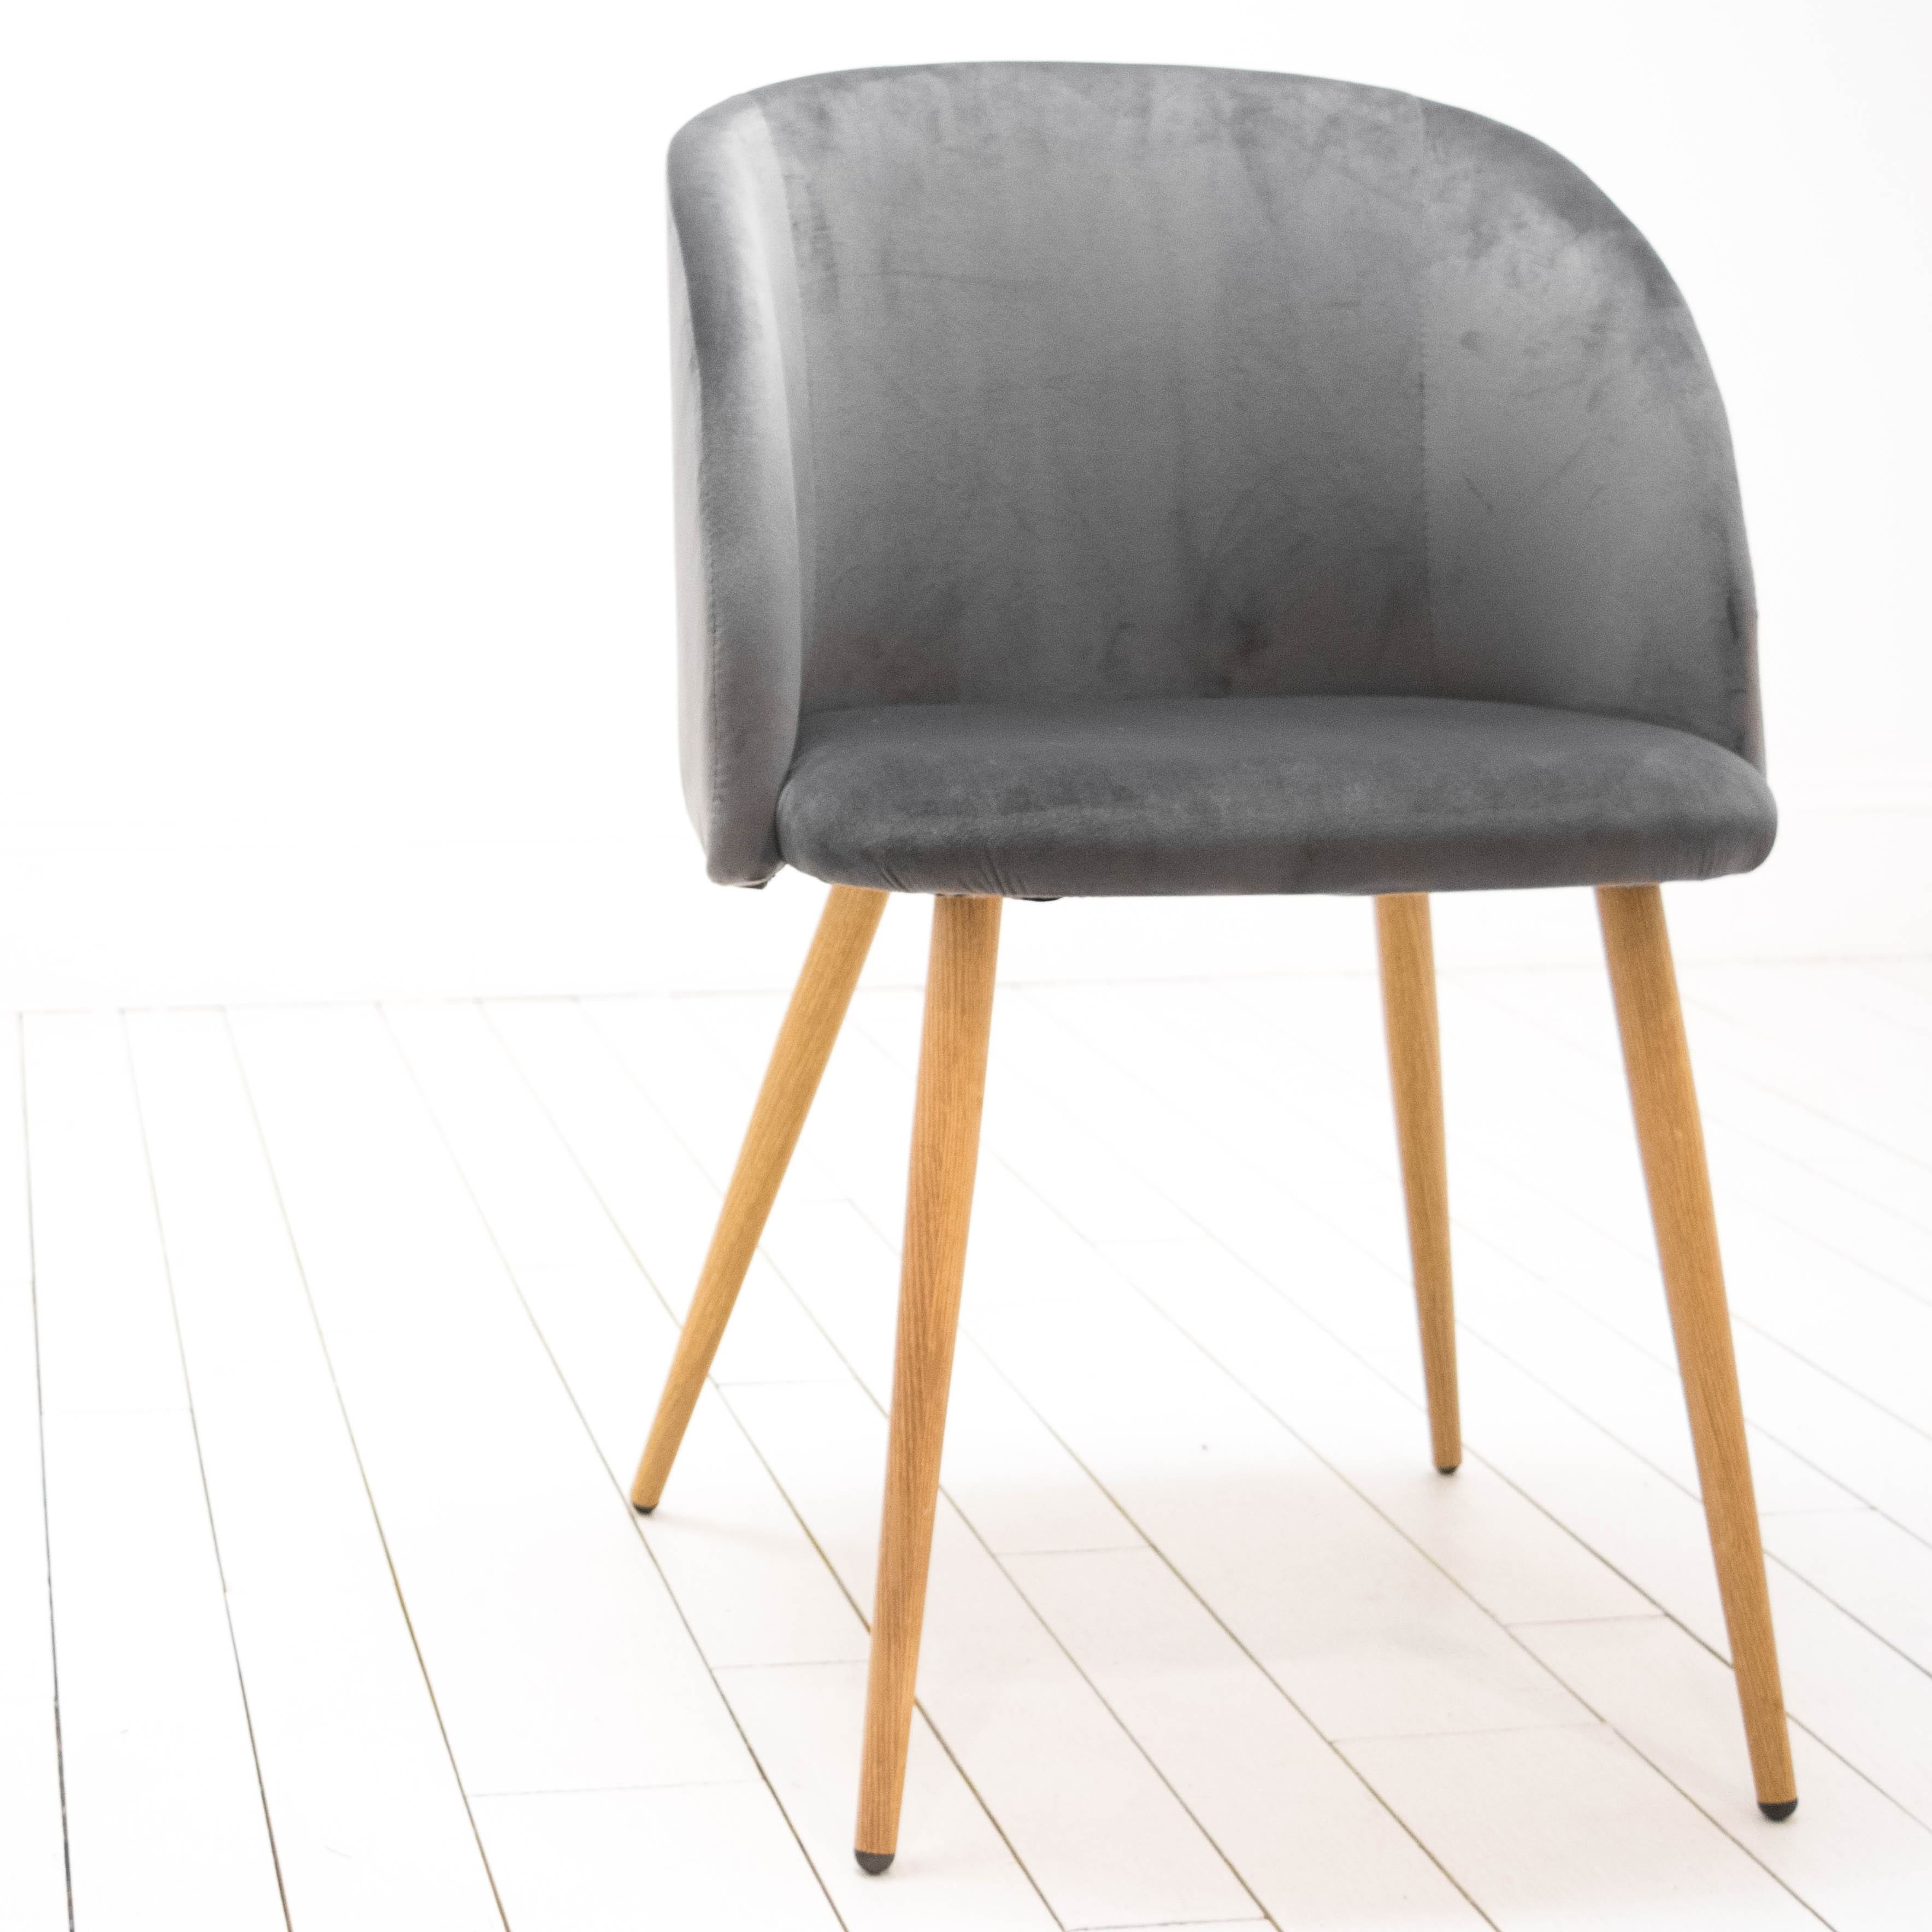 Wyatt Chairs - Gray